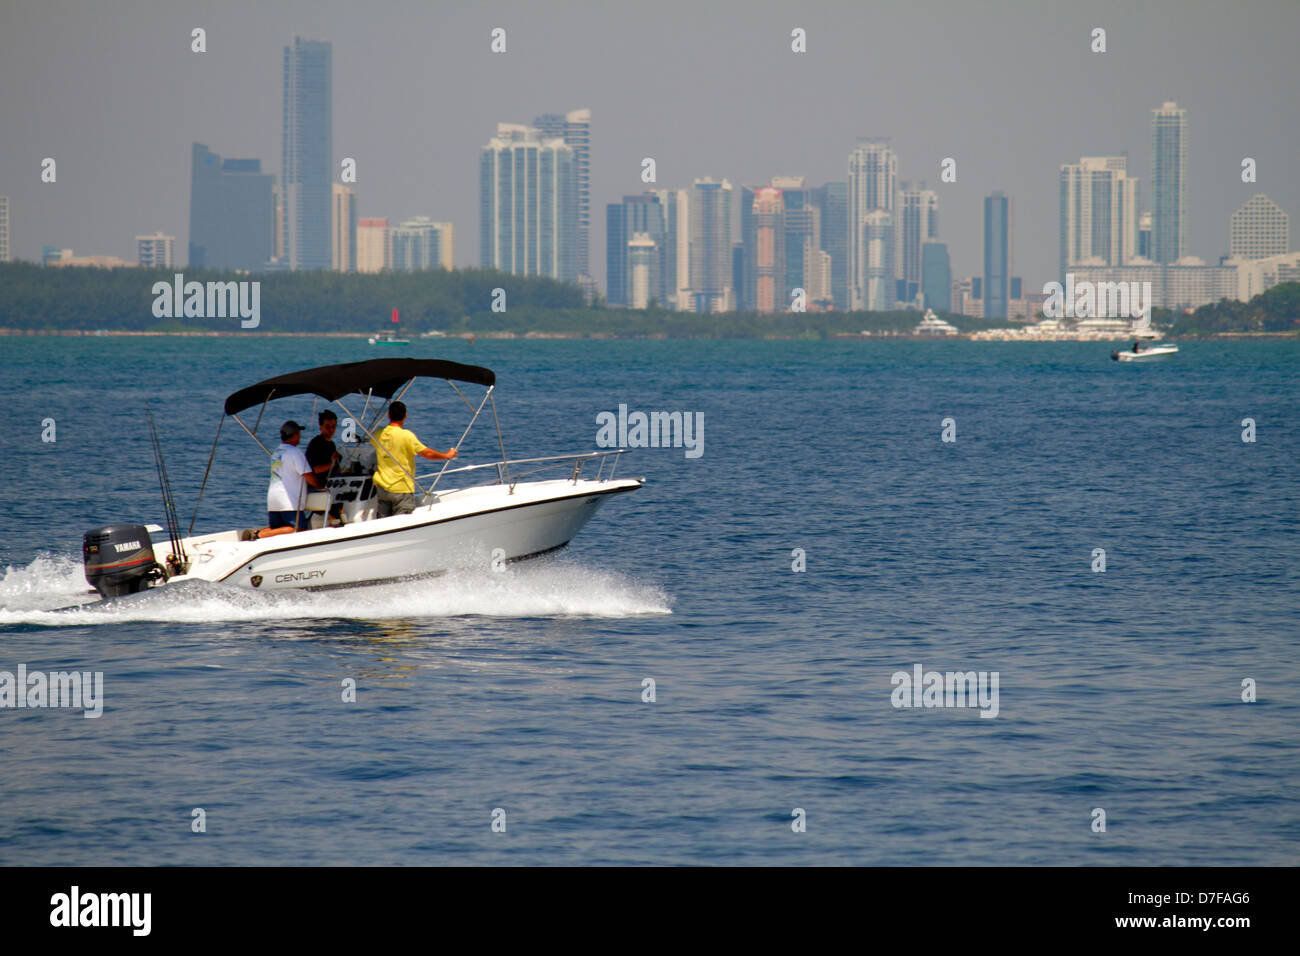 miami beach florida atlantic ocean boat boating deep sea